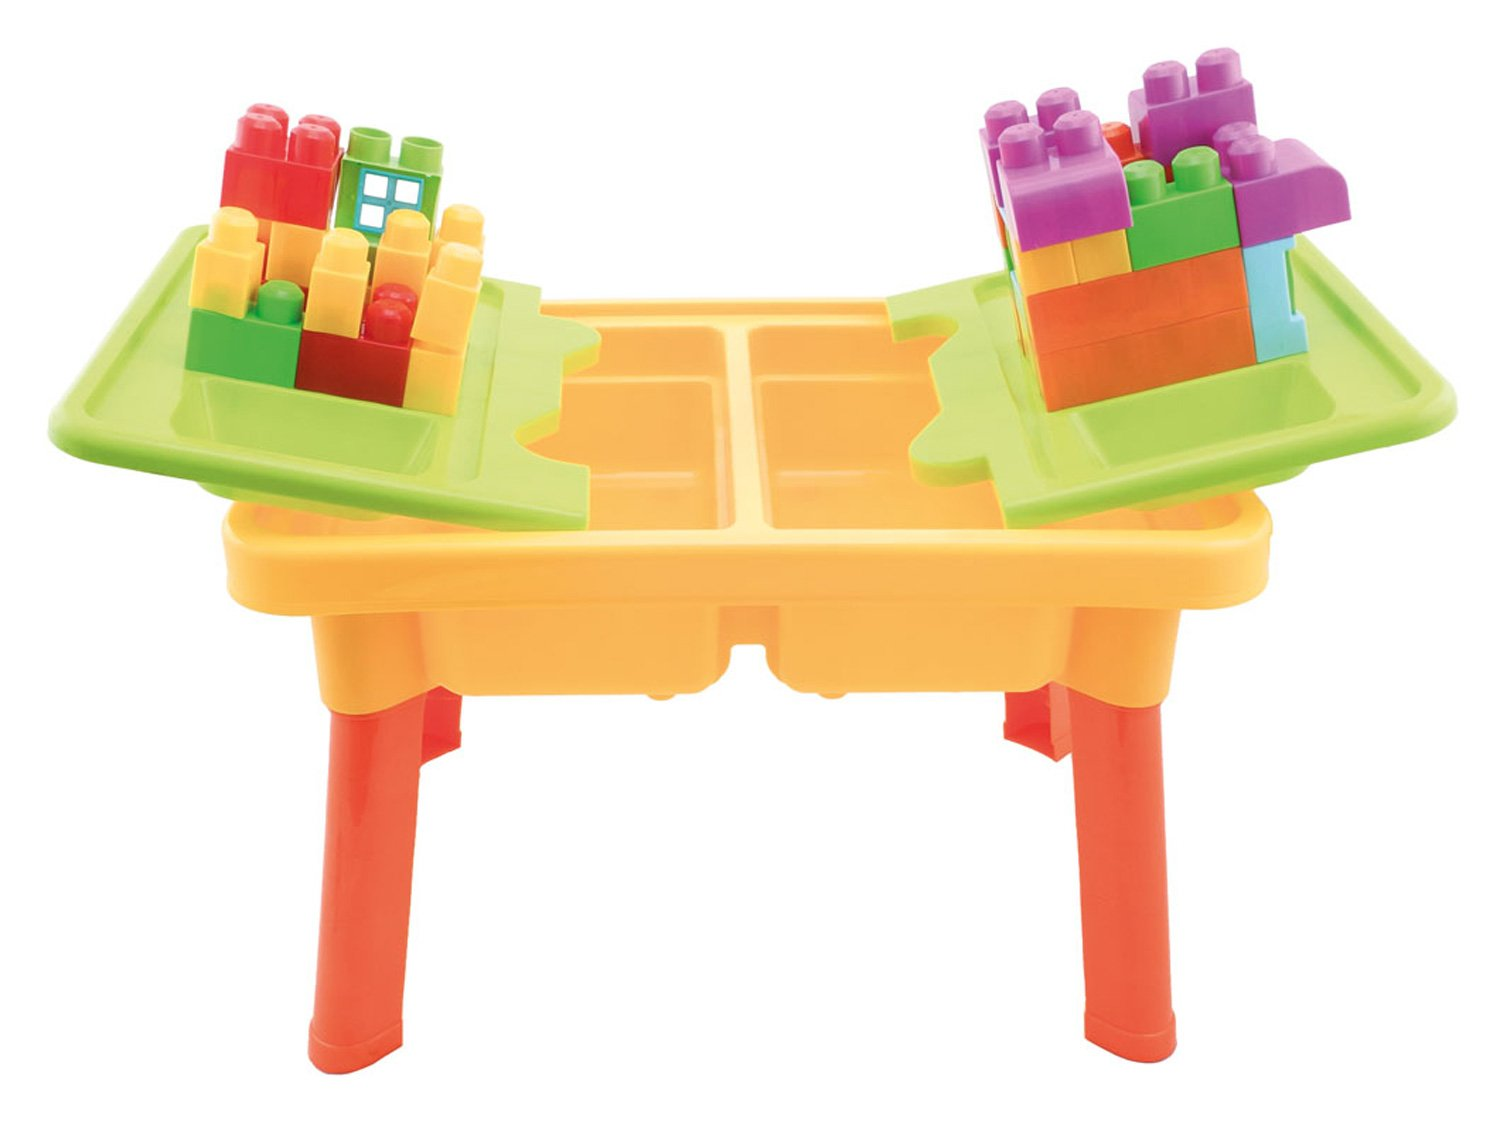 Bieco Activity Table with Accessories (Multi-Colour)